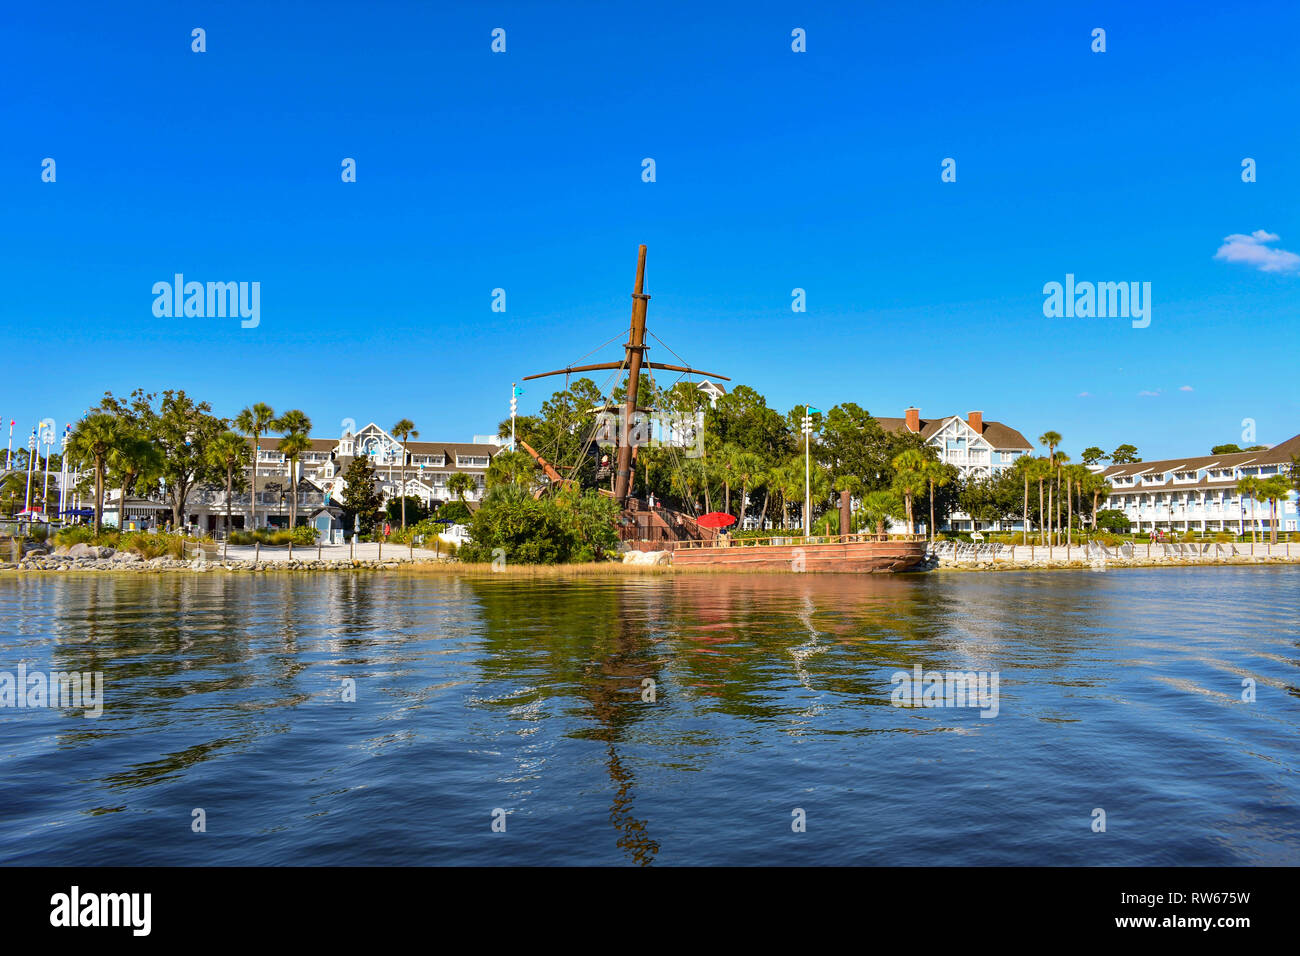 Pirate Shop Stock Photos & Pirate Shop Stock Images - Page 3 - Alamy